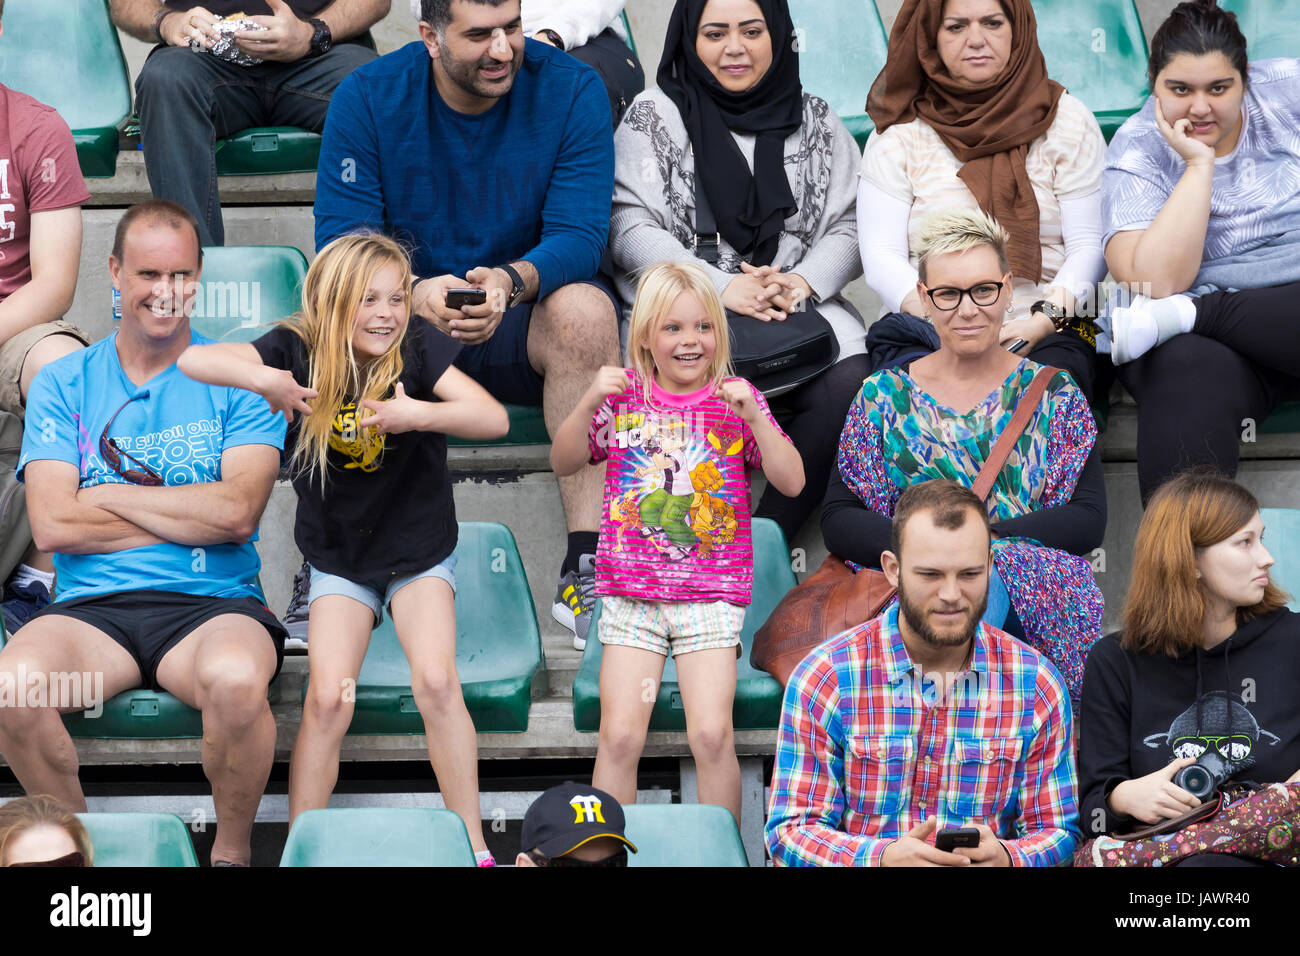 spectators cheering and laughing - Stock Image